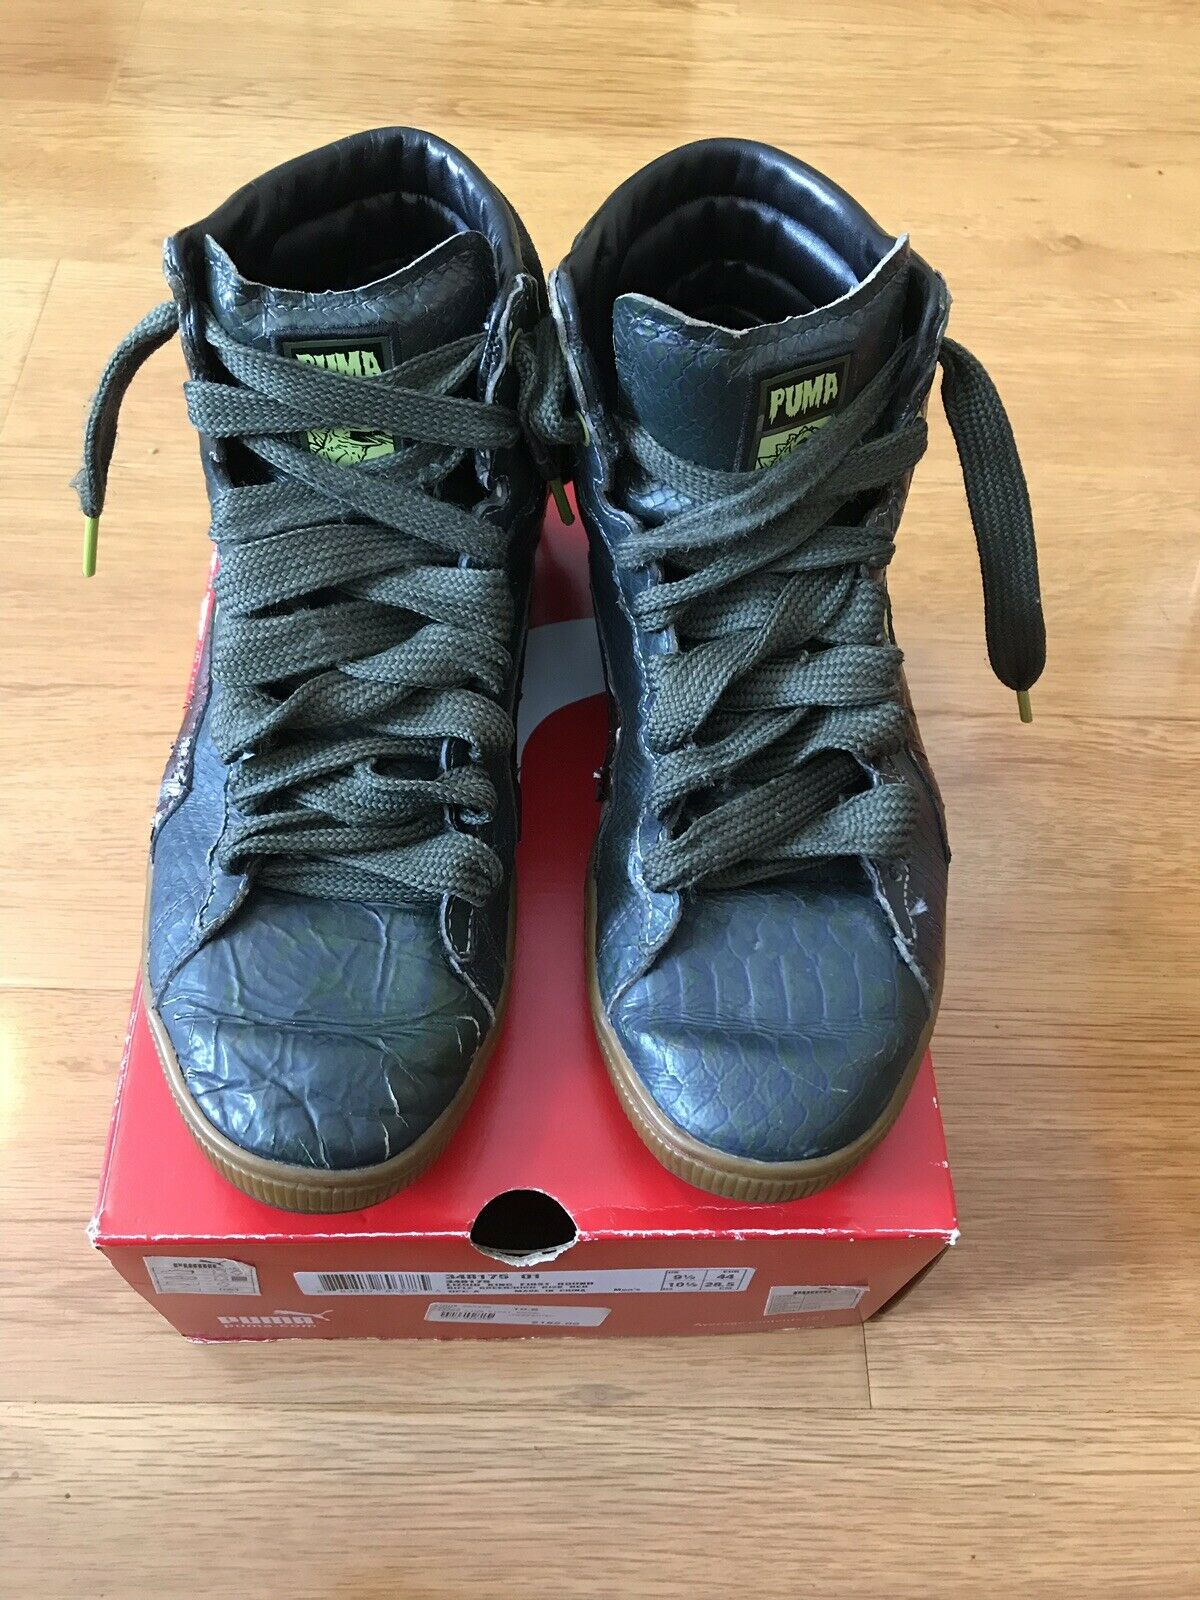 RARE Sz Sz Sz 10.5 PUMA Lizoid King First Round Rifle verde High Risk rosso UNDEFEATED 0a1fa0